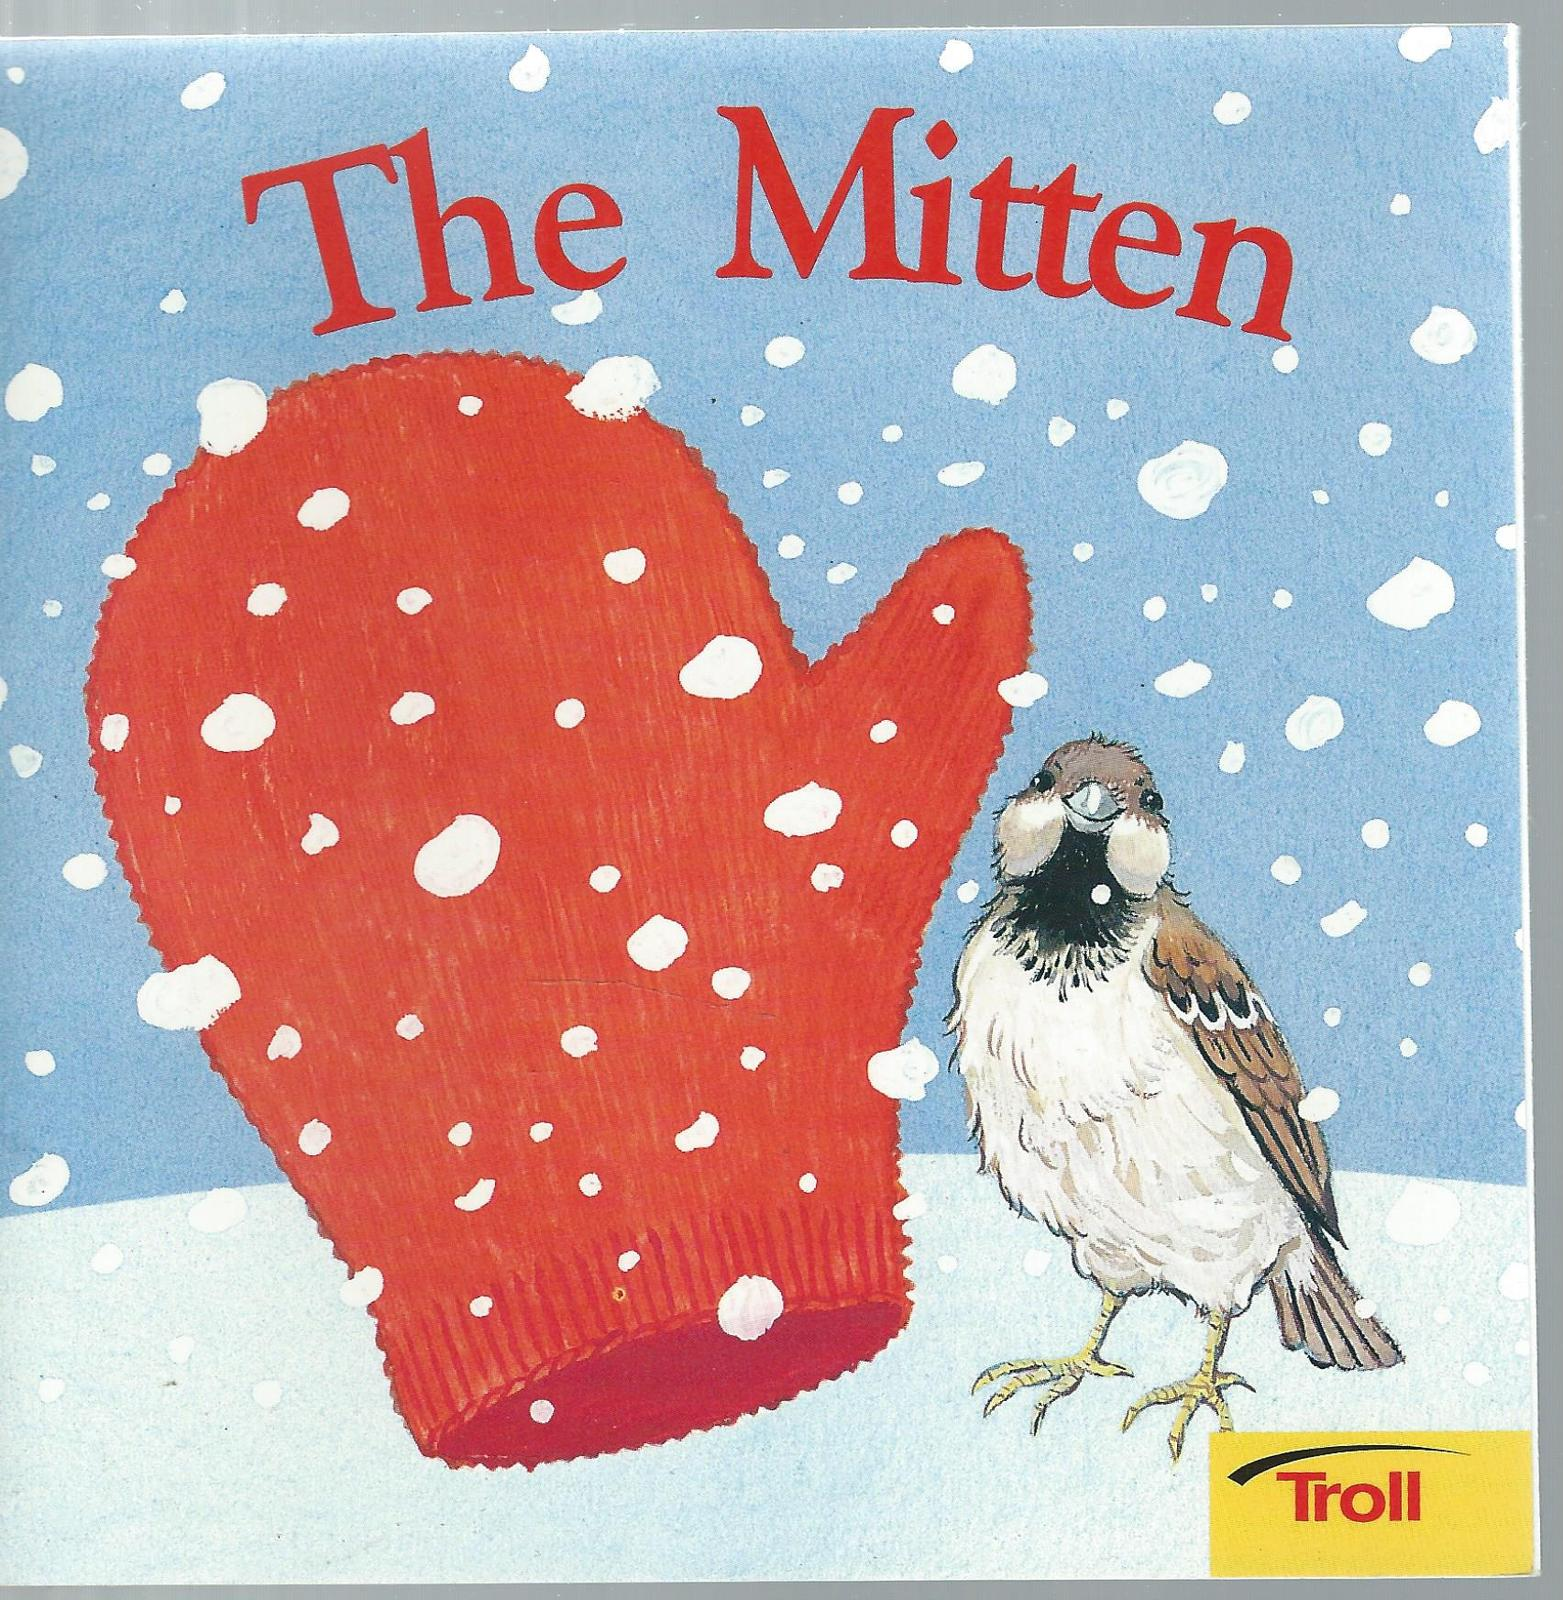 Primary image for The Mitten by Rita Walsh, Paige Billin-Frye,Illustrator